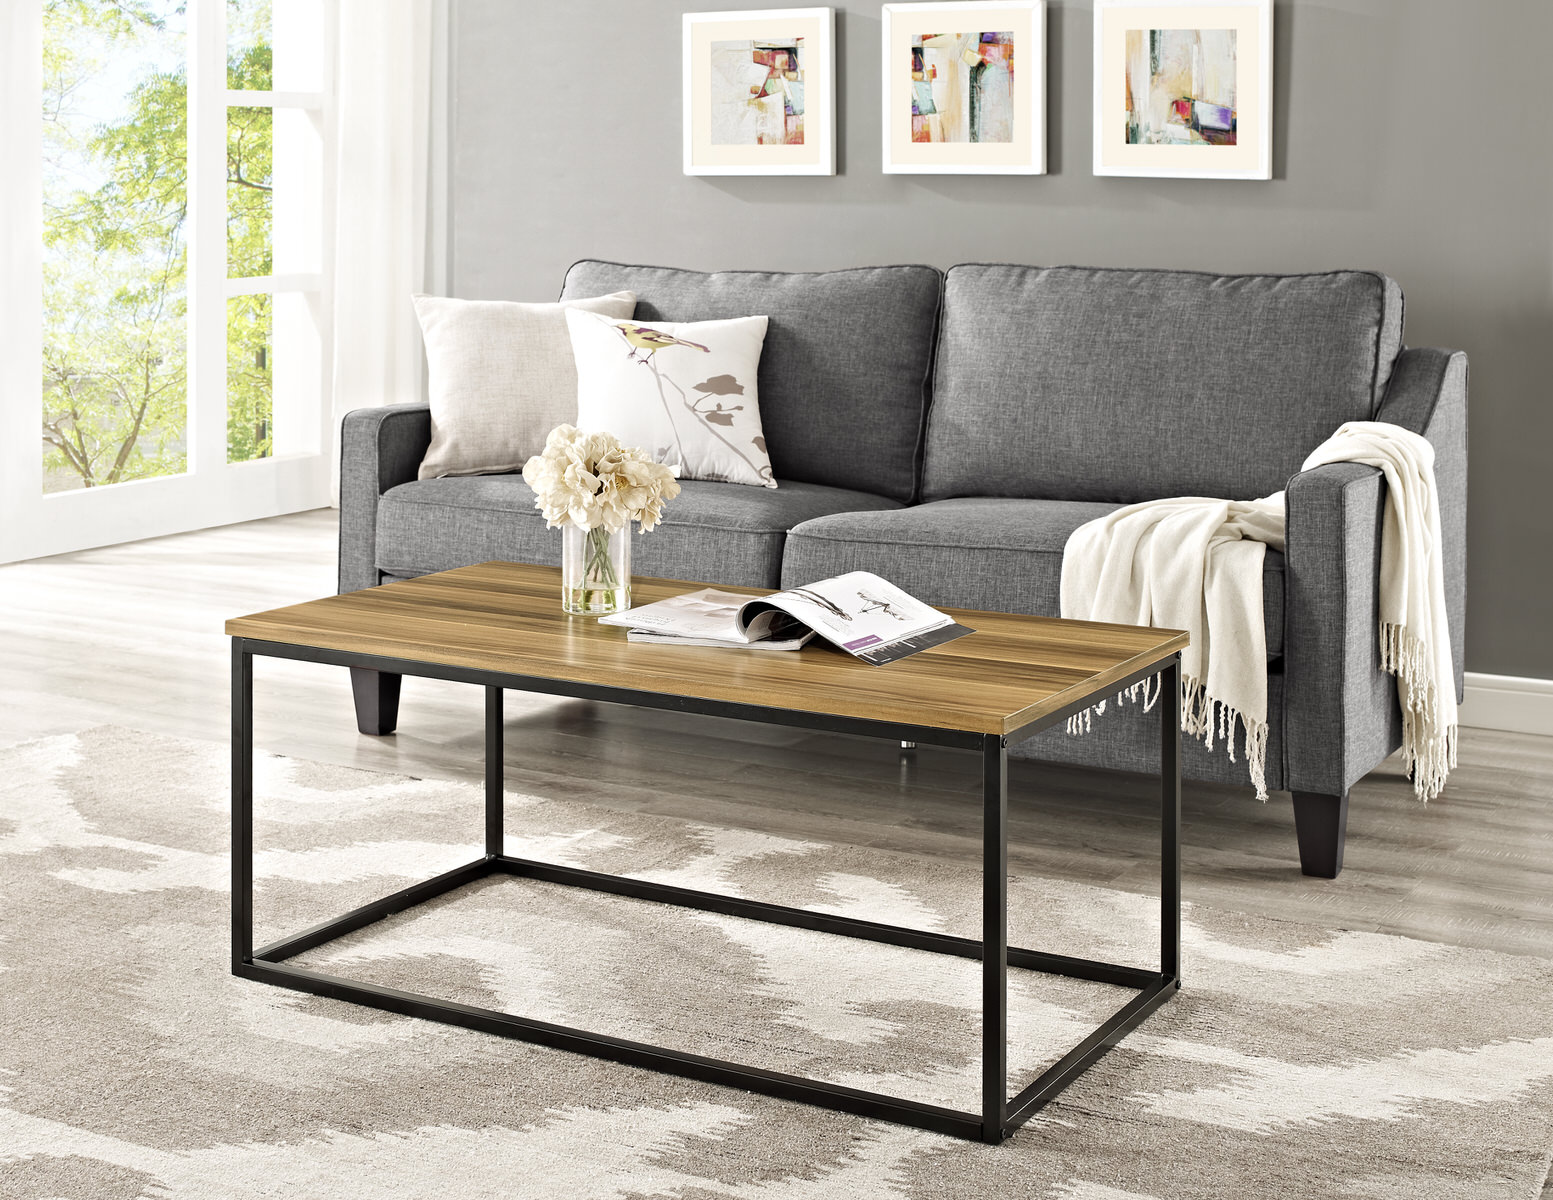 42 inch mixed material coffee table teak by walker edison